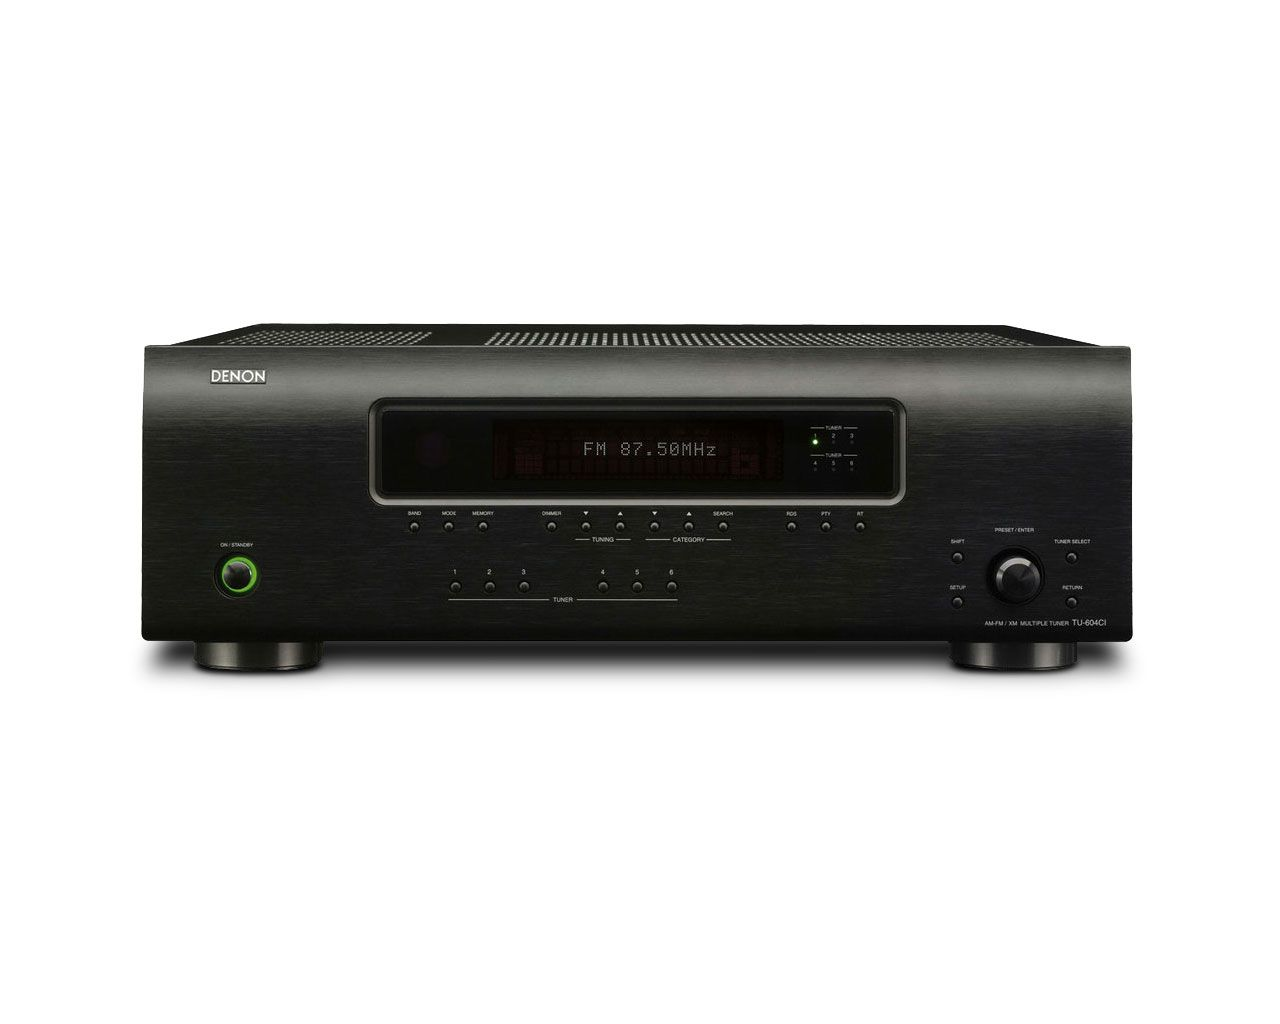 DENON TU-604CI Multi-Zone Dual AM/FM Tuner with Expansion Slots NEW